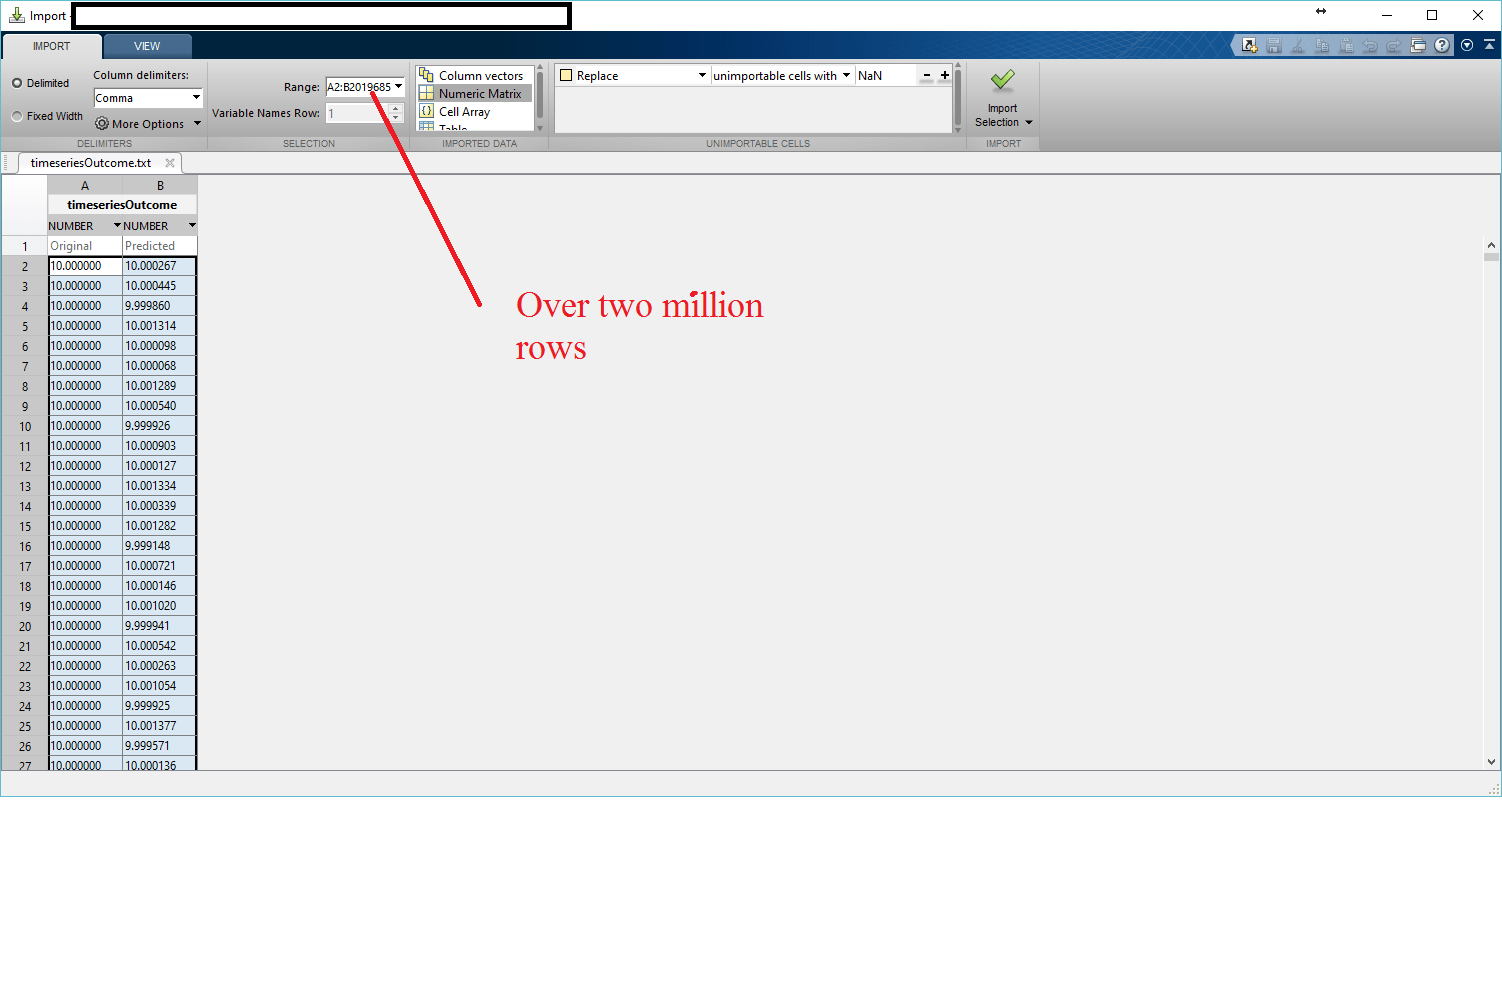 Excel Csv File With More Than 1 048 576 Rows Of Data